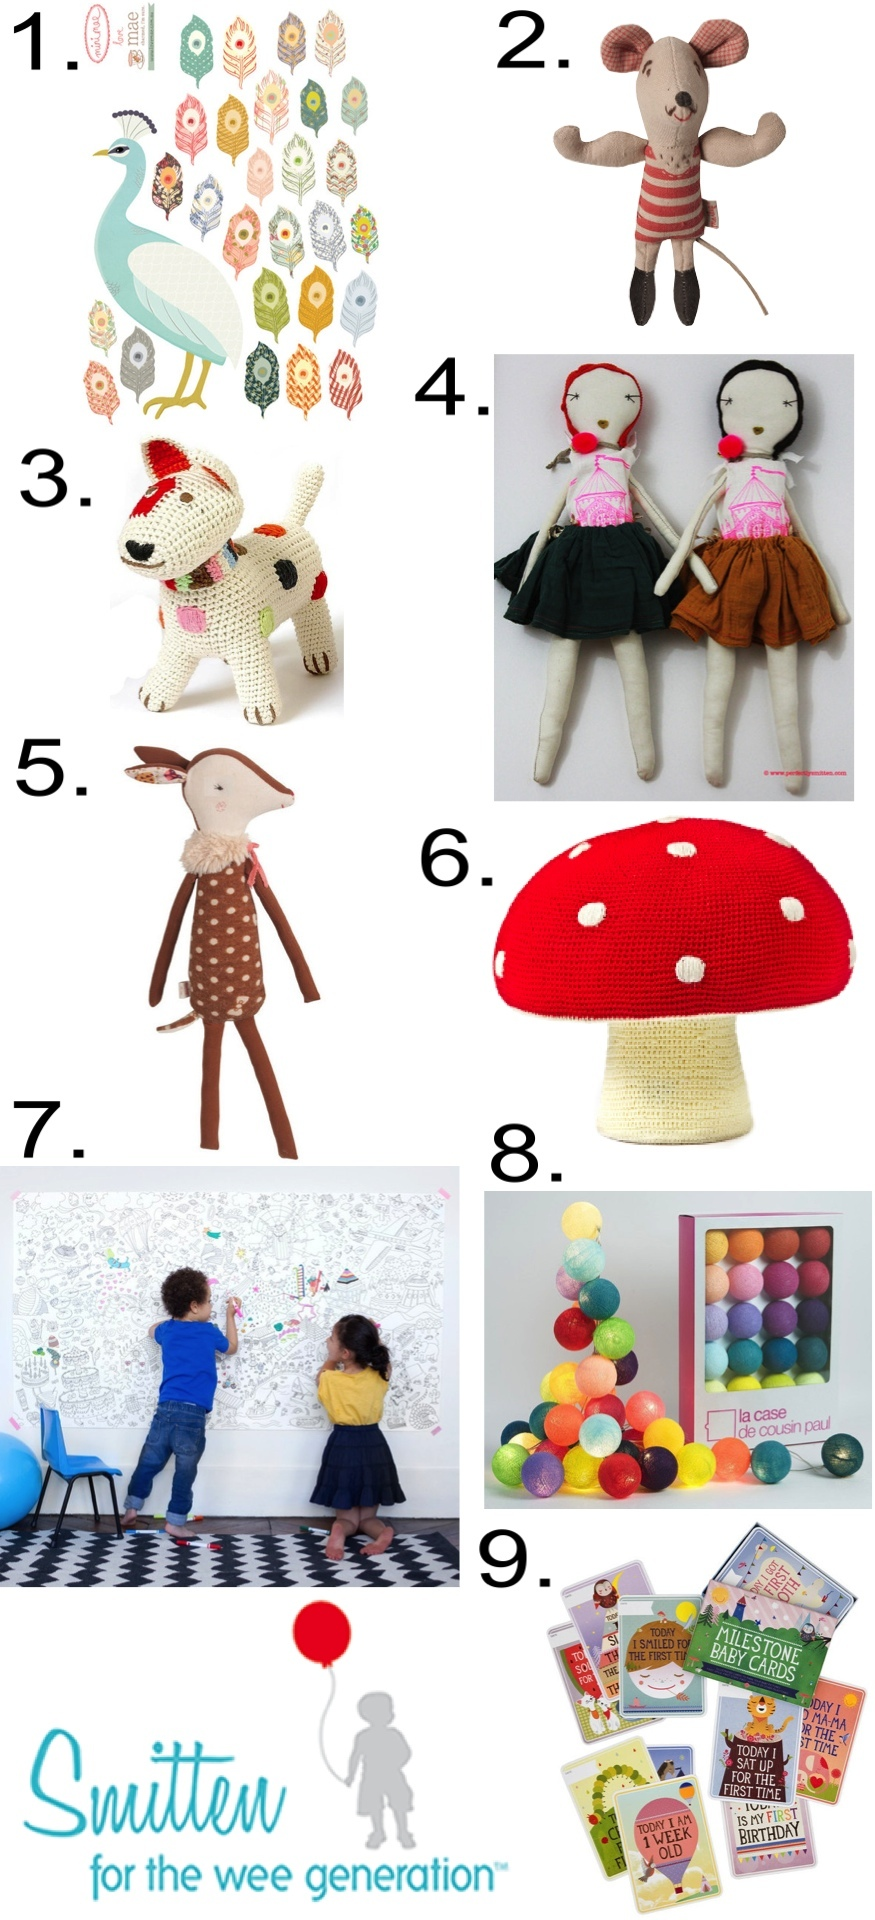 """Some of my favorite items we stock are:""  1.  MINI PEACOCK PLUMAGE WALL STICKER  2.  STRONGMAN MOUSE  3.  ORGANIC COTTON TERRIER   4.  JESS BROWN RAG DOLL   ""Some of our most popular items are:"" 5.  BAMBI DEER DOLL  6.  MUSHROOM POUF  7.  GIANT COLORING PAGE  8.  BALL GARLAND LIGHT KIT   9.  MILESTONE BABY CARDS"